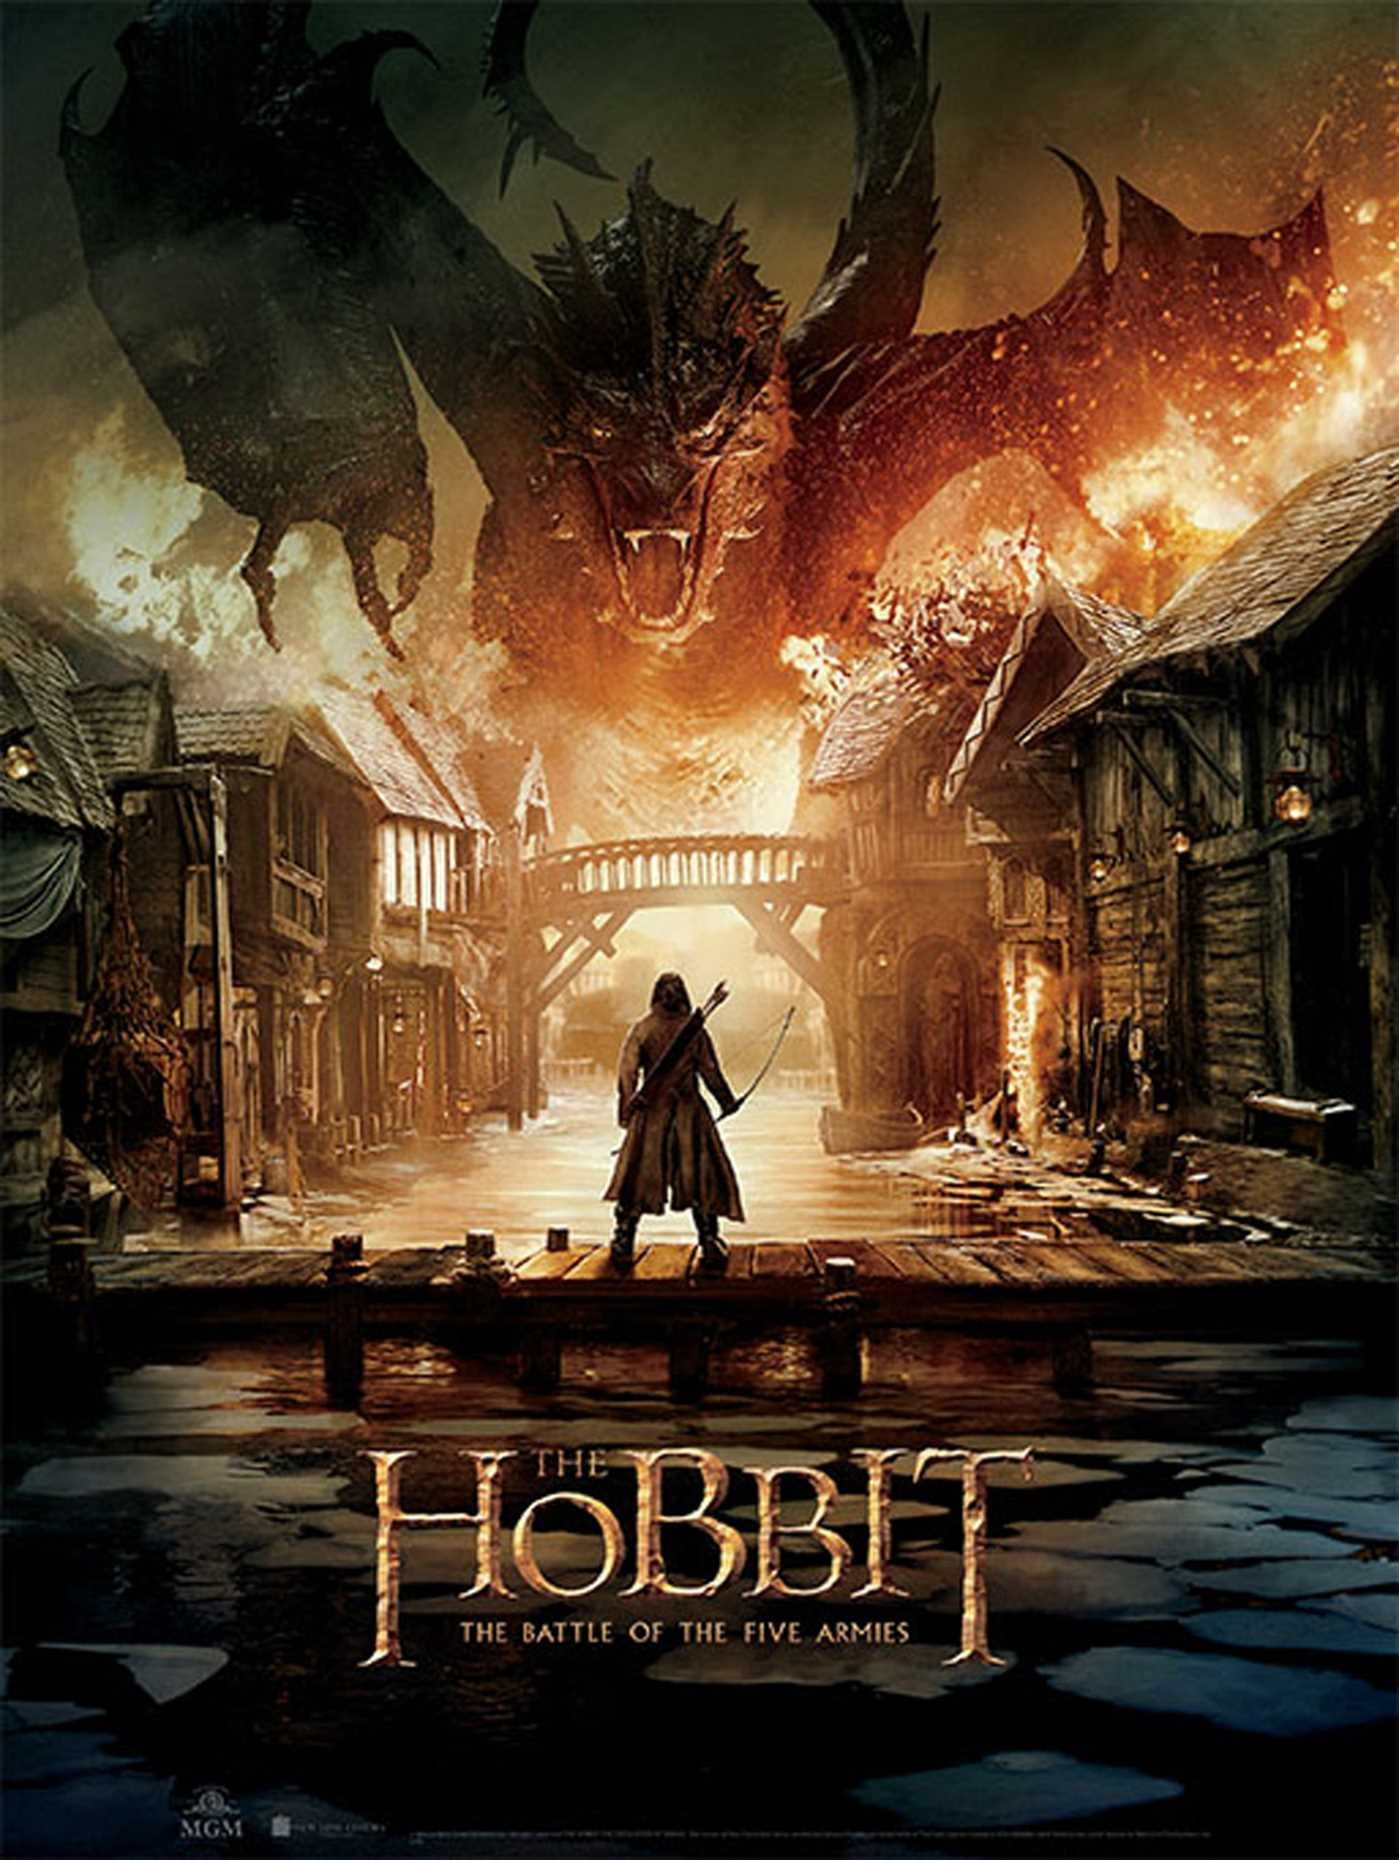 The Hobbit: The Definitive Movie Posters (Insights Poster Collections): New  Line Cinema: 9781608873869: Amazon.com: Books